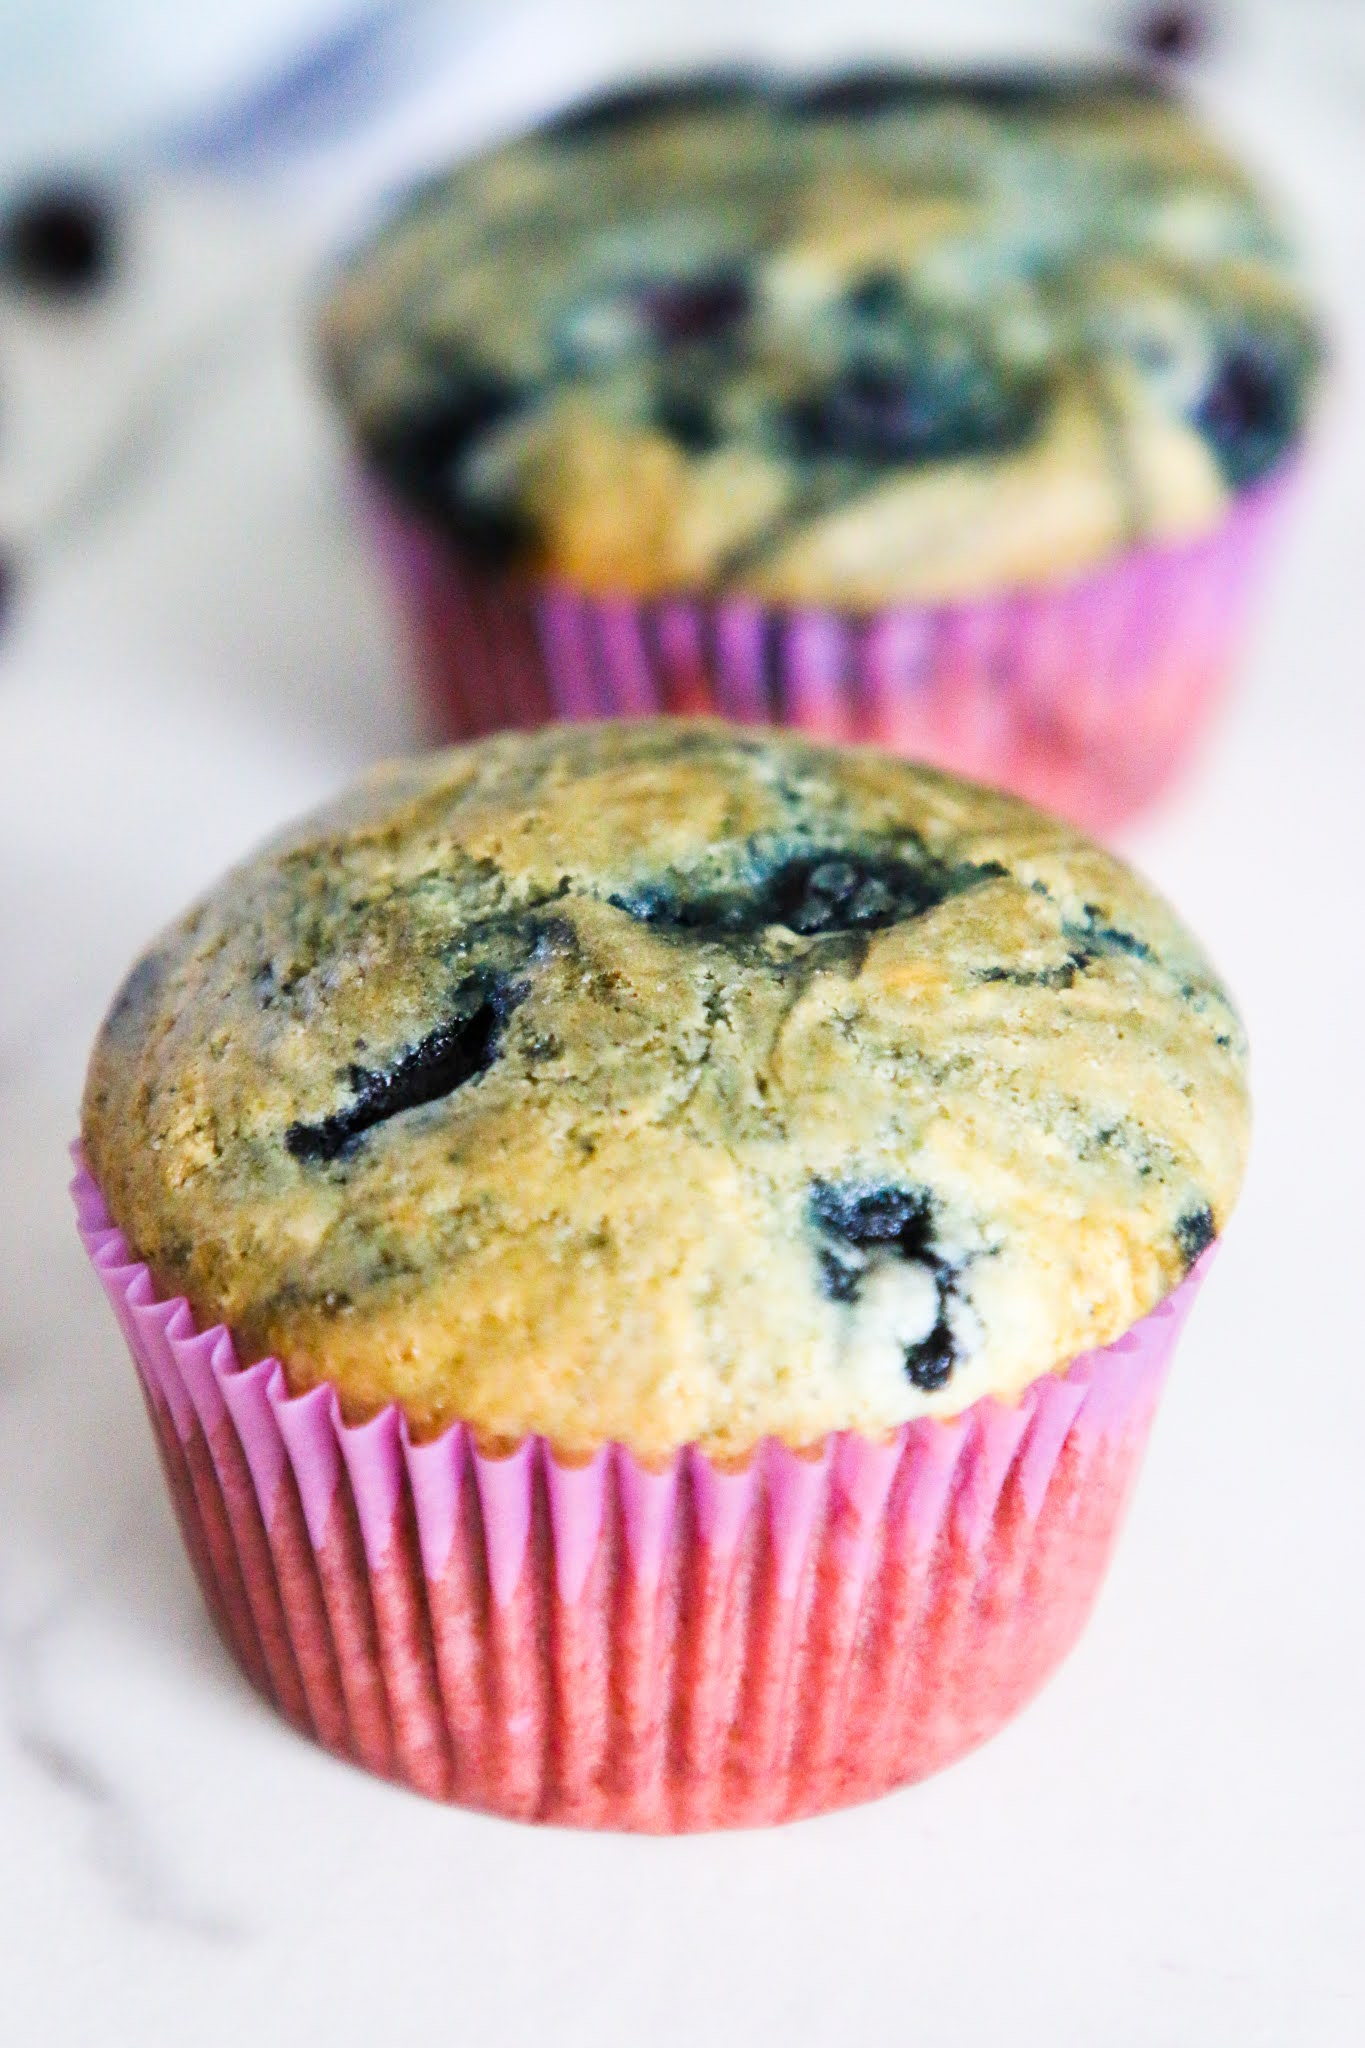 A blueberry muffin on a marble table with another muffin in the background